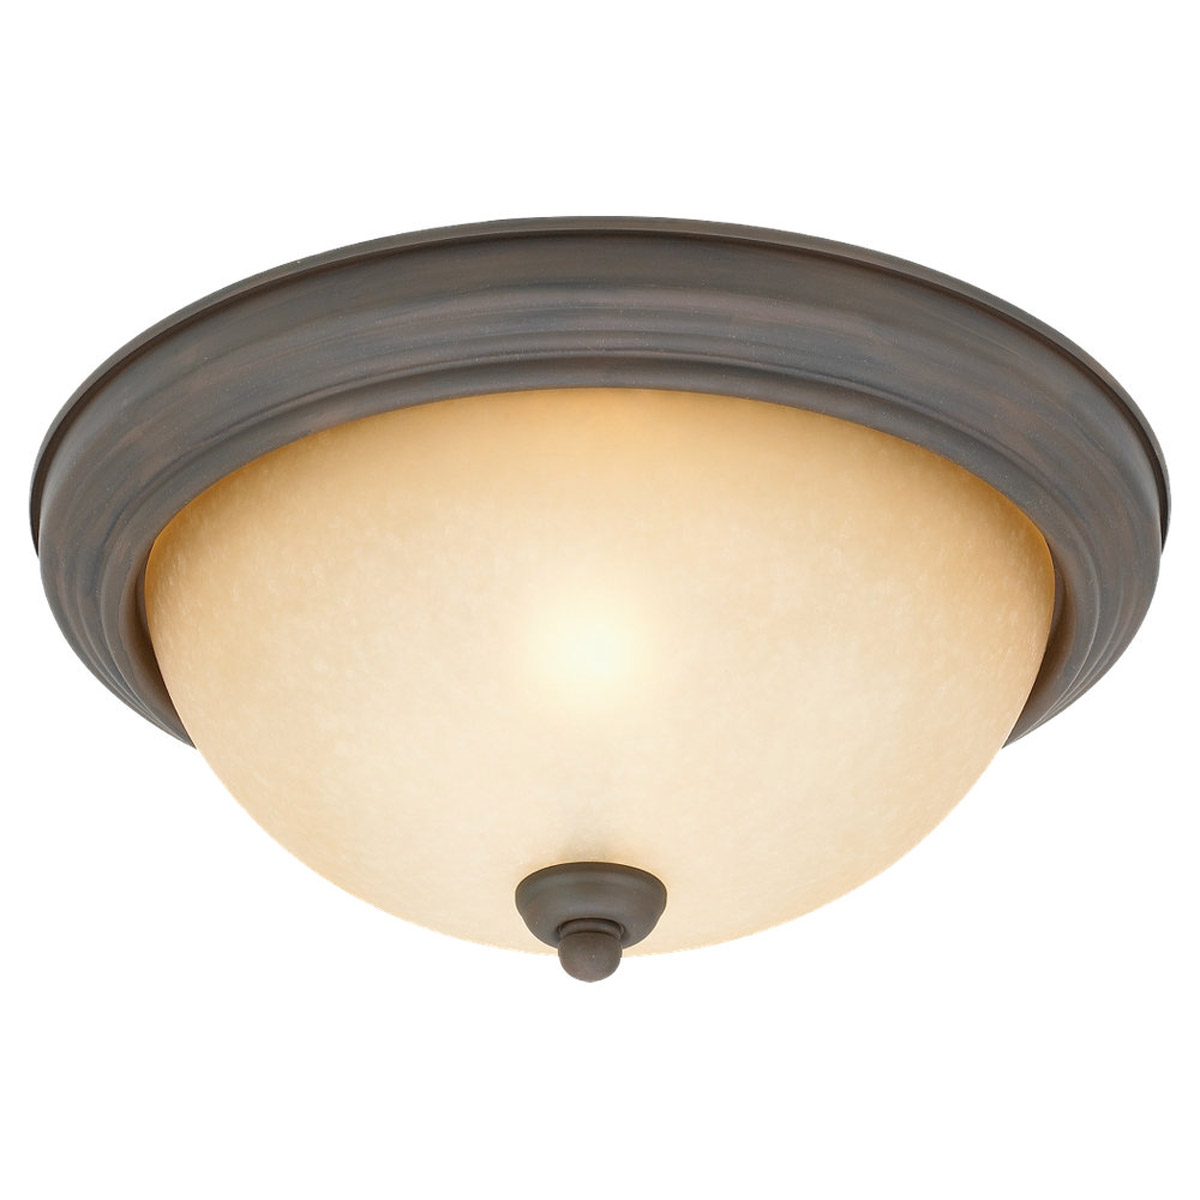 Sea Gull Lighting Montclaire 2 Light Flush Mount in Olde Iron 77064-72 photo